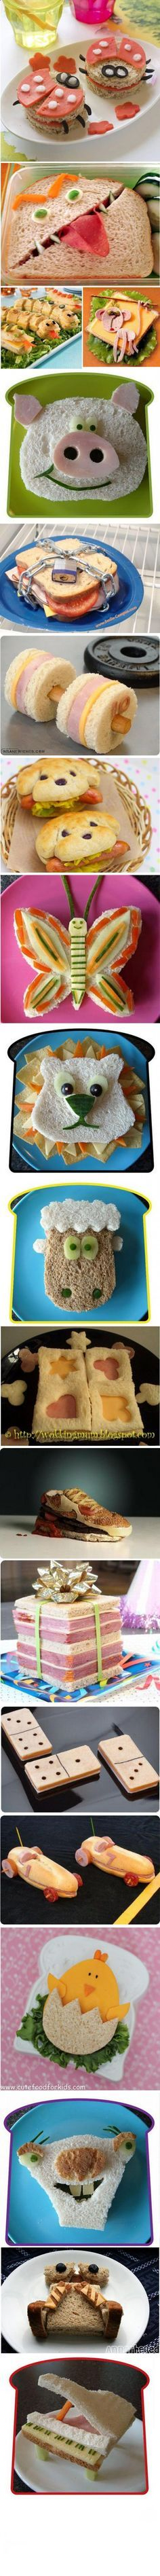 Nice ideas to make your kid's lunch a highlight of the day / Schöne Ideen, wie man das Mittag essen Cute Snacks, Snacks Für Party, Cute Food, Good Food, Yummy Food, Toddler Meals, Kids Meals, Sandwich Original, Baby Food Recipes